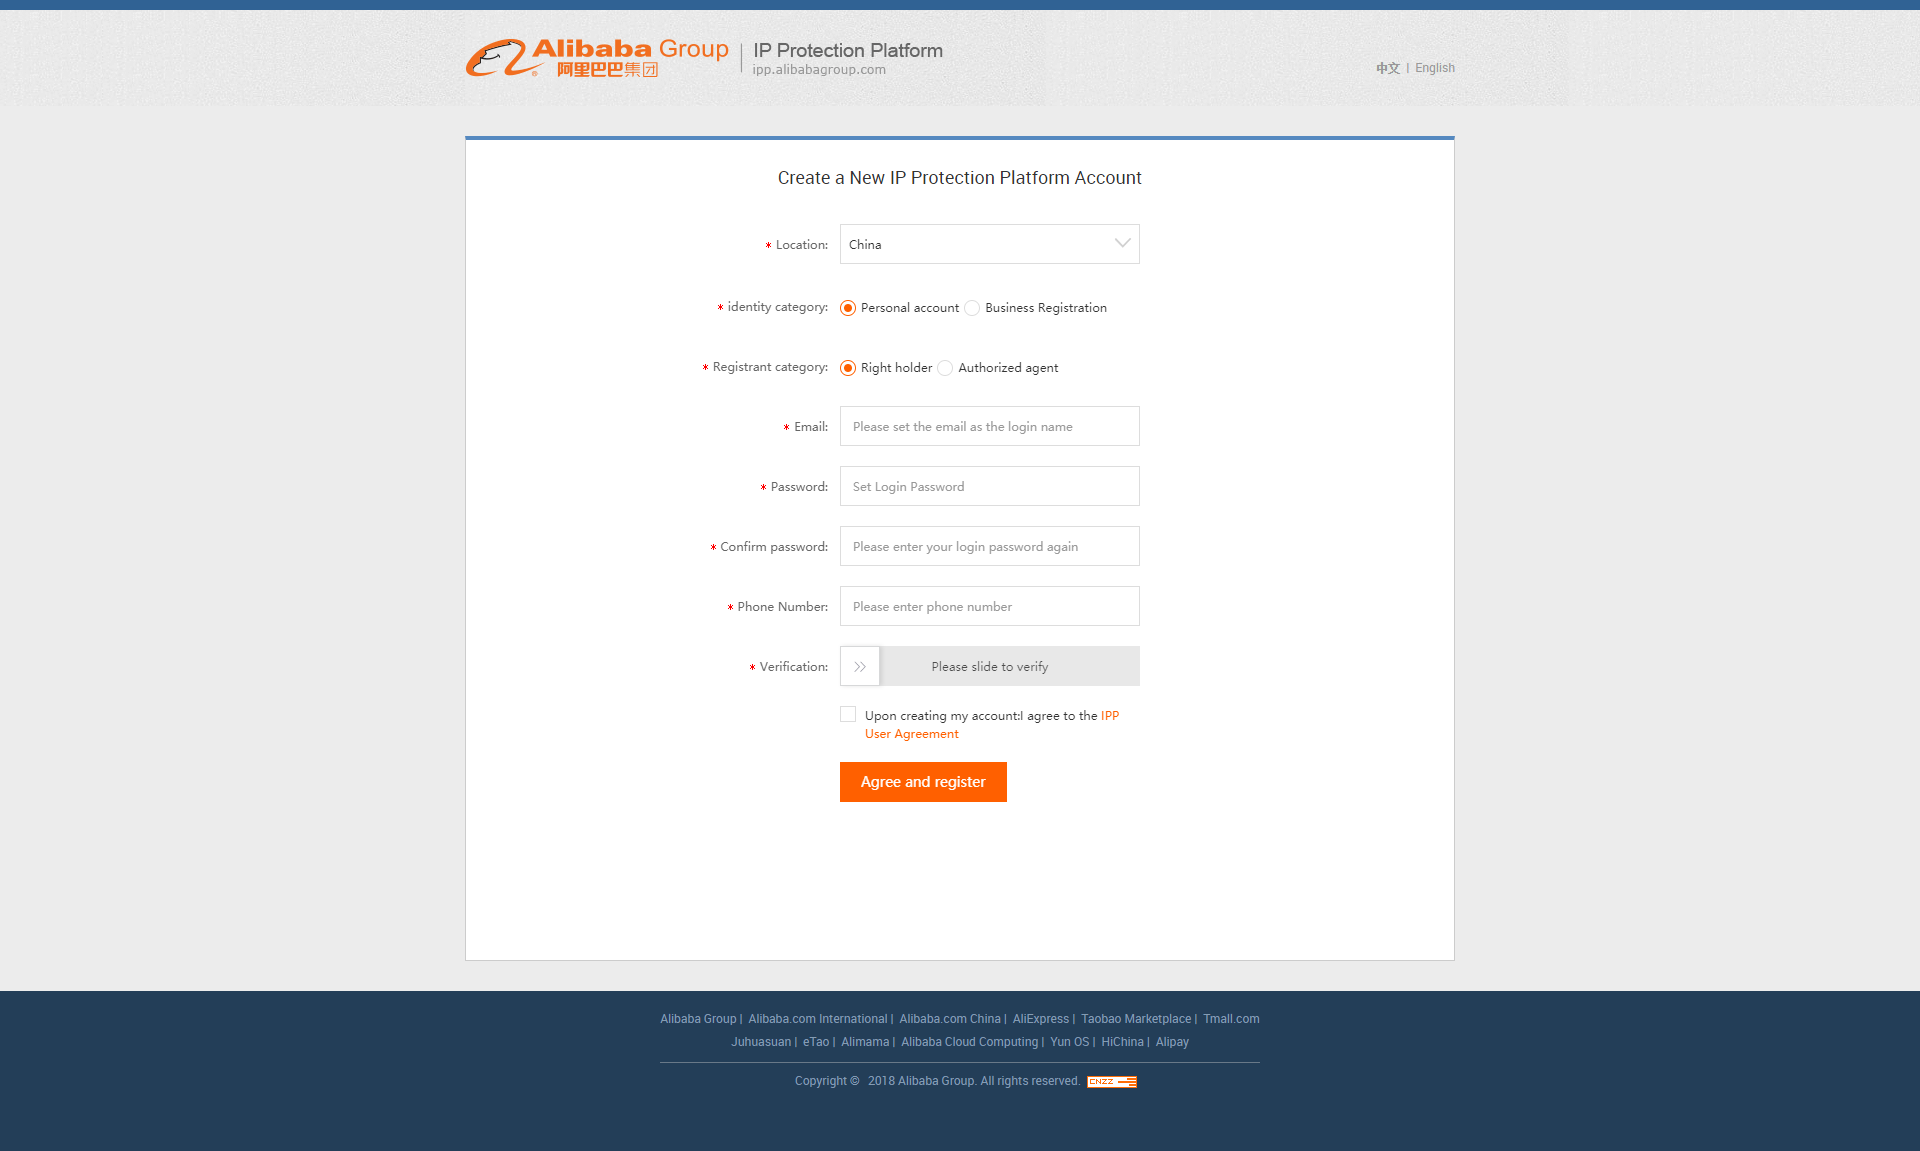 Alibaba's register account page